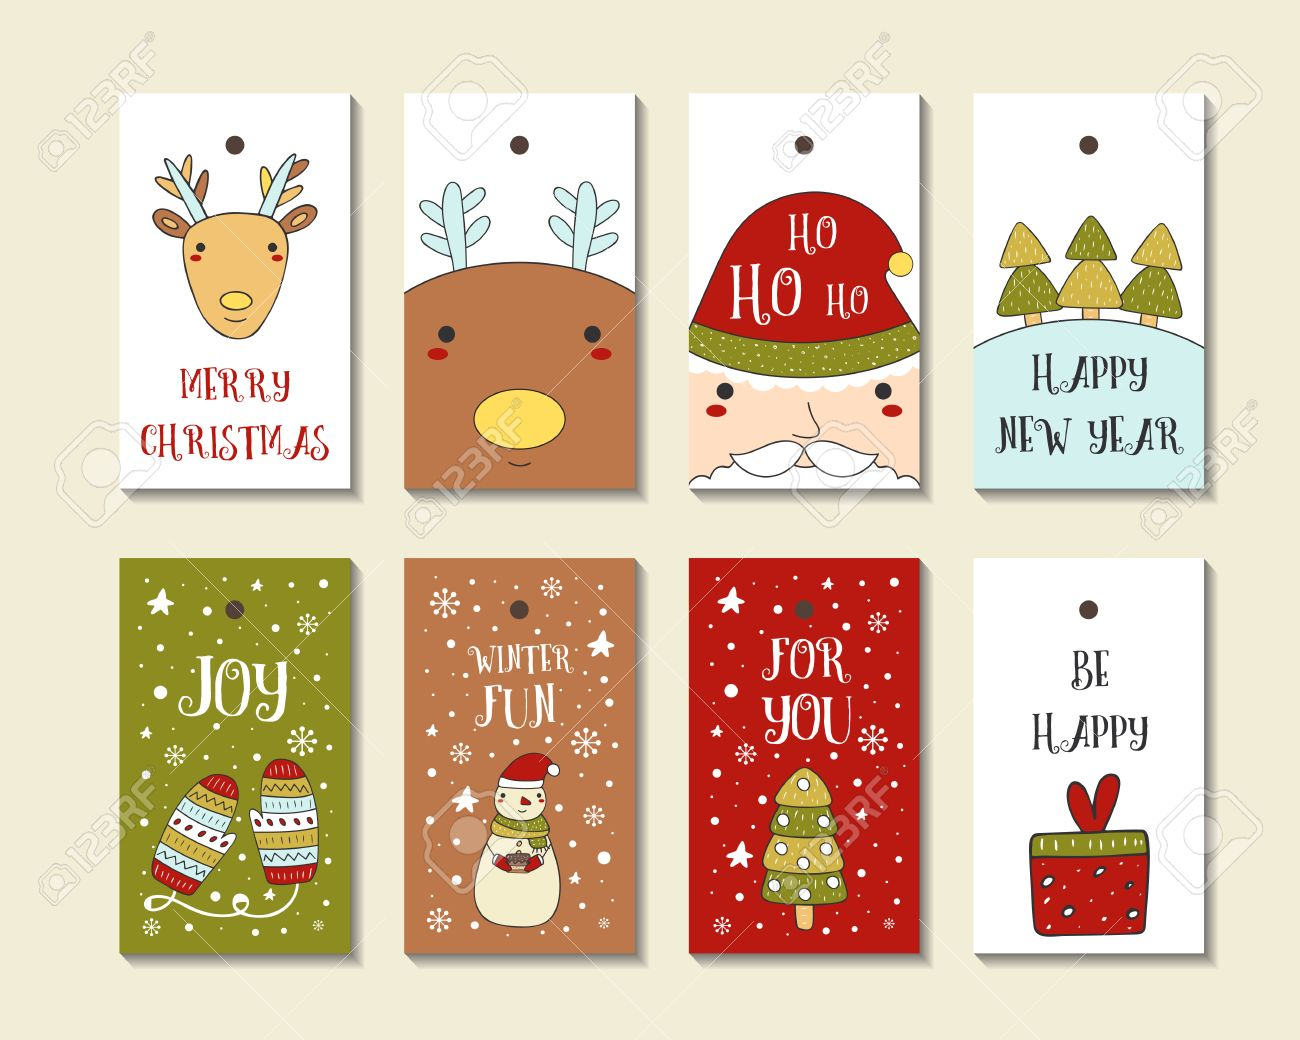 Cute Hand Drawn Doodle Christmas Cards Brochures Postcards Royalty Free Cliparts Vectors And Stock Illustration Image 62192703